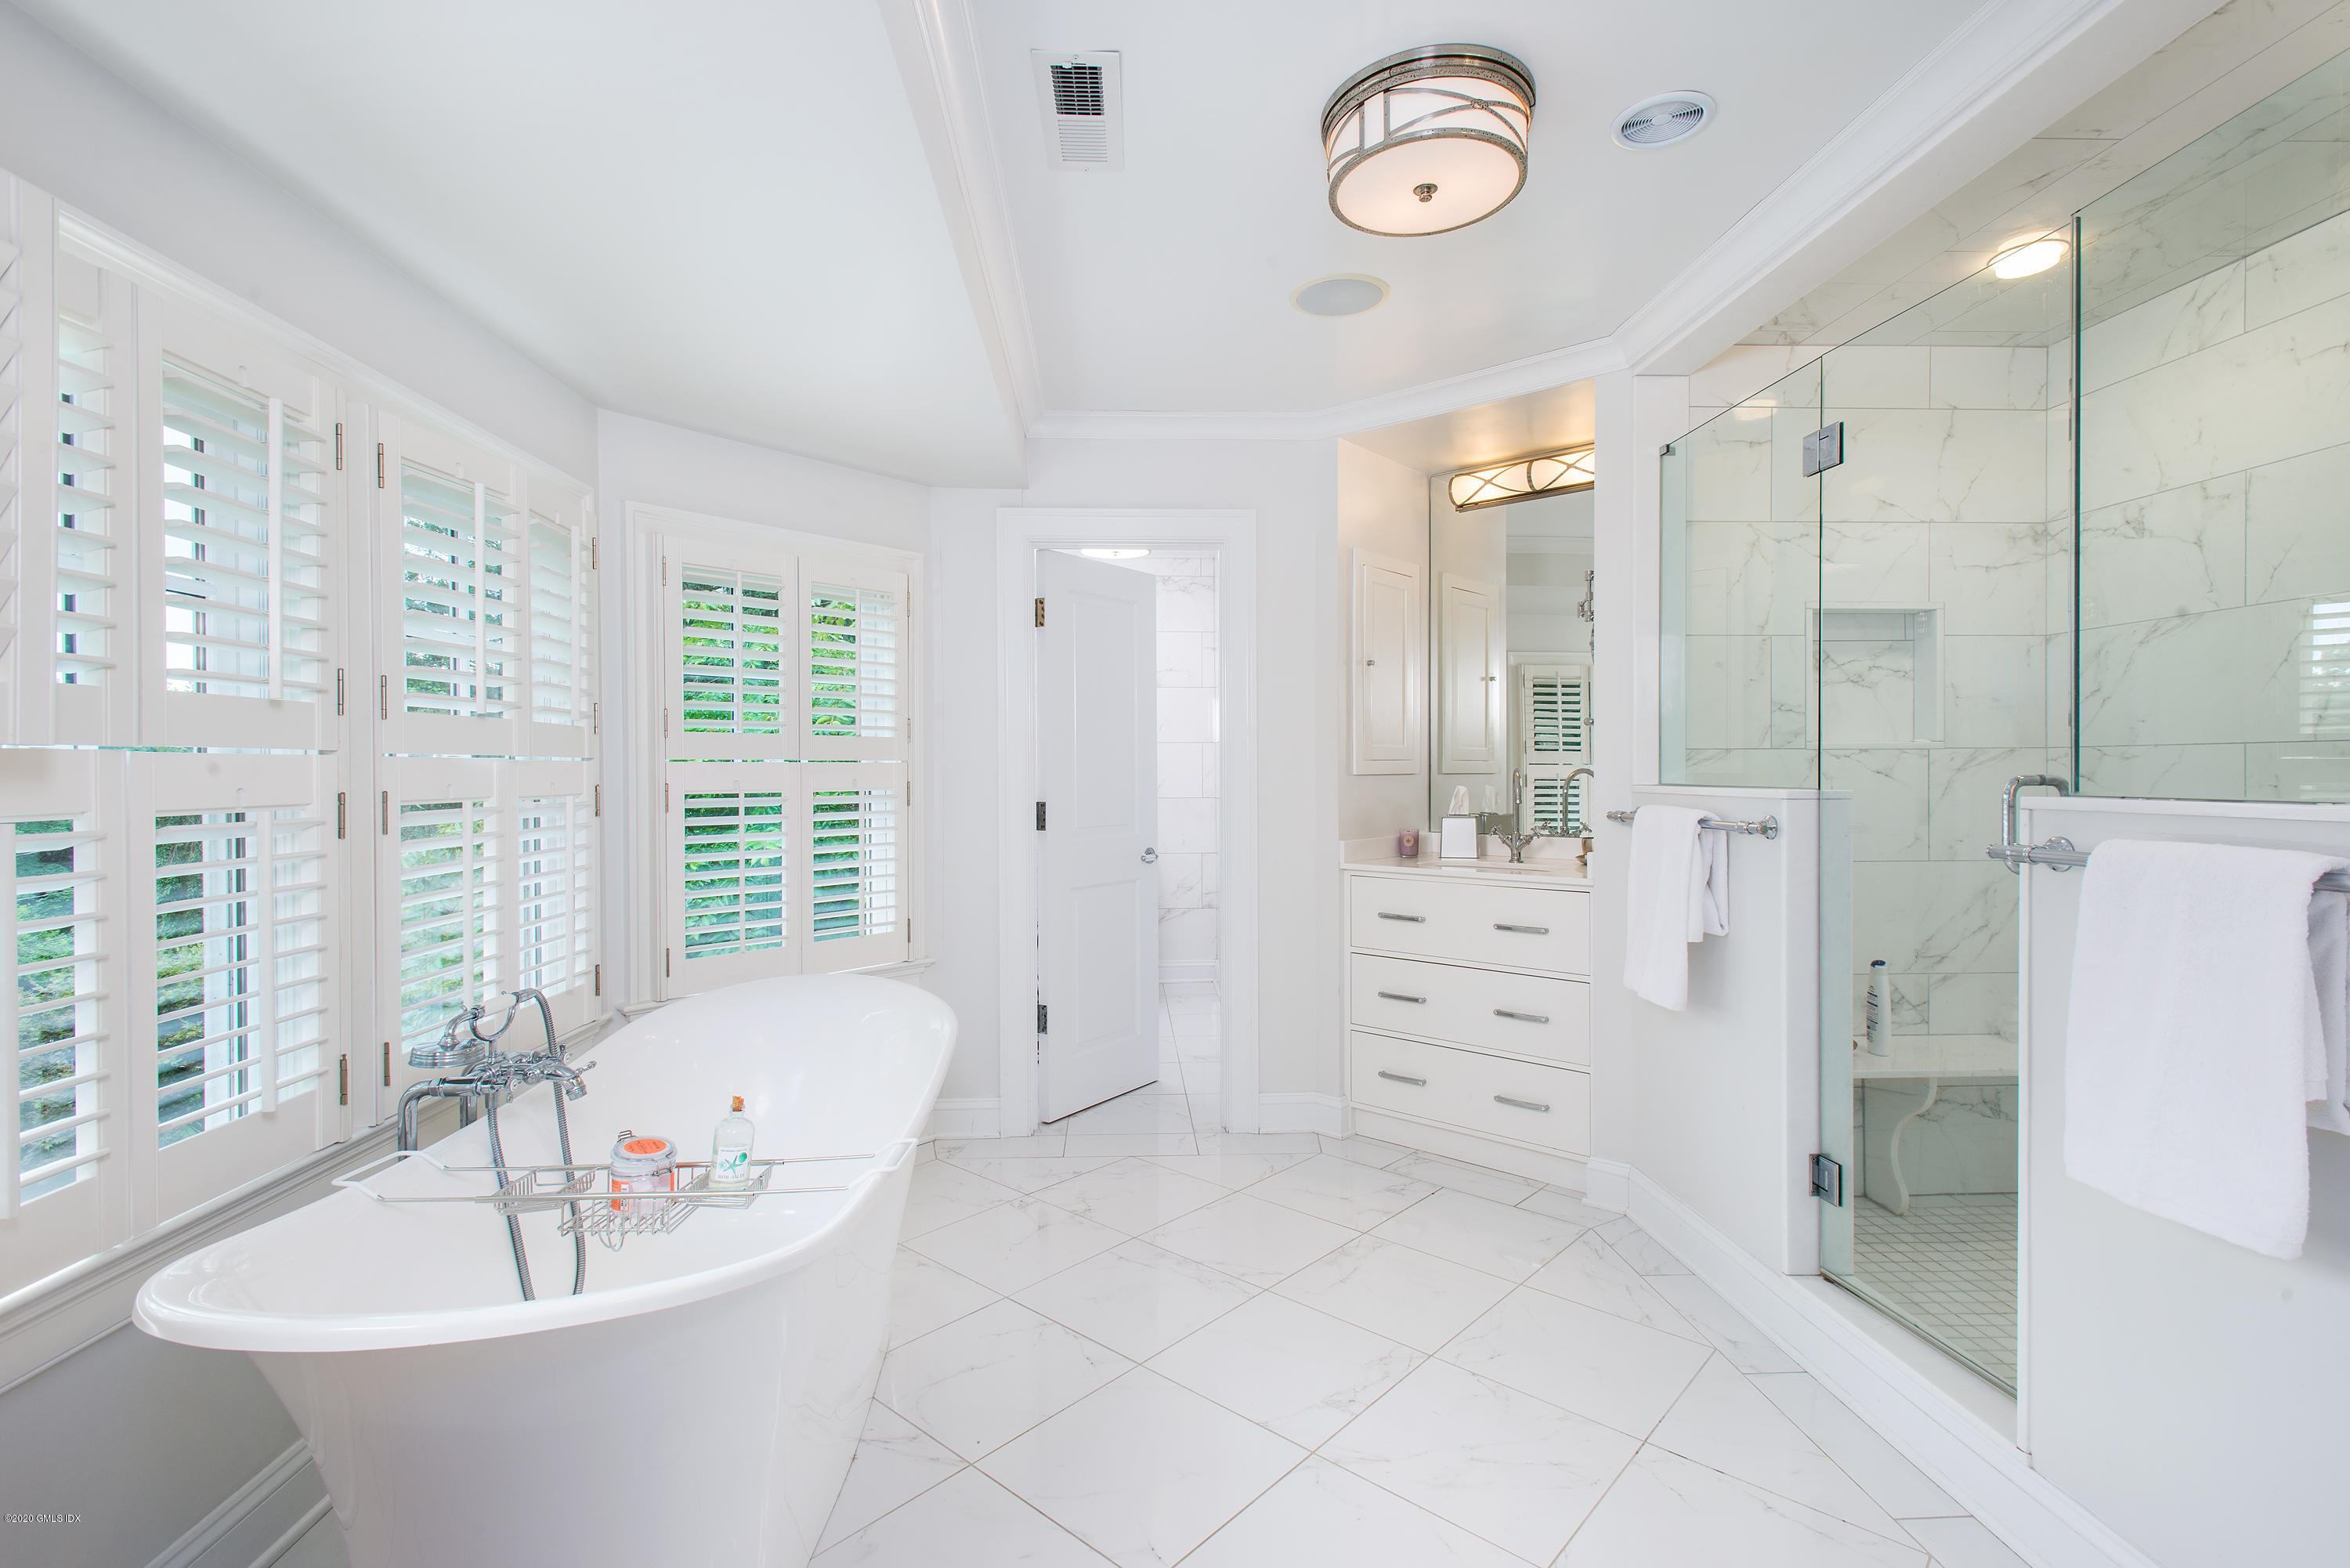 47 Woodside Drive, Greenwich, Connecticut 06830, 6 Bedrooms Bedrooms, ,5 BathroomsBathrooms,Single family,For sale,Woodside,110738